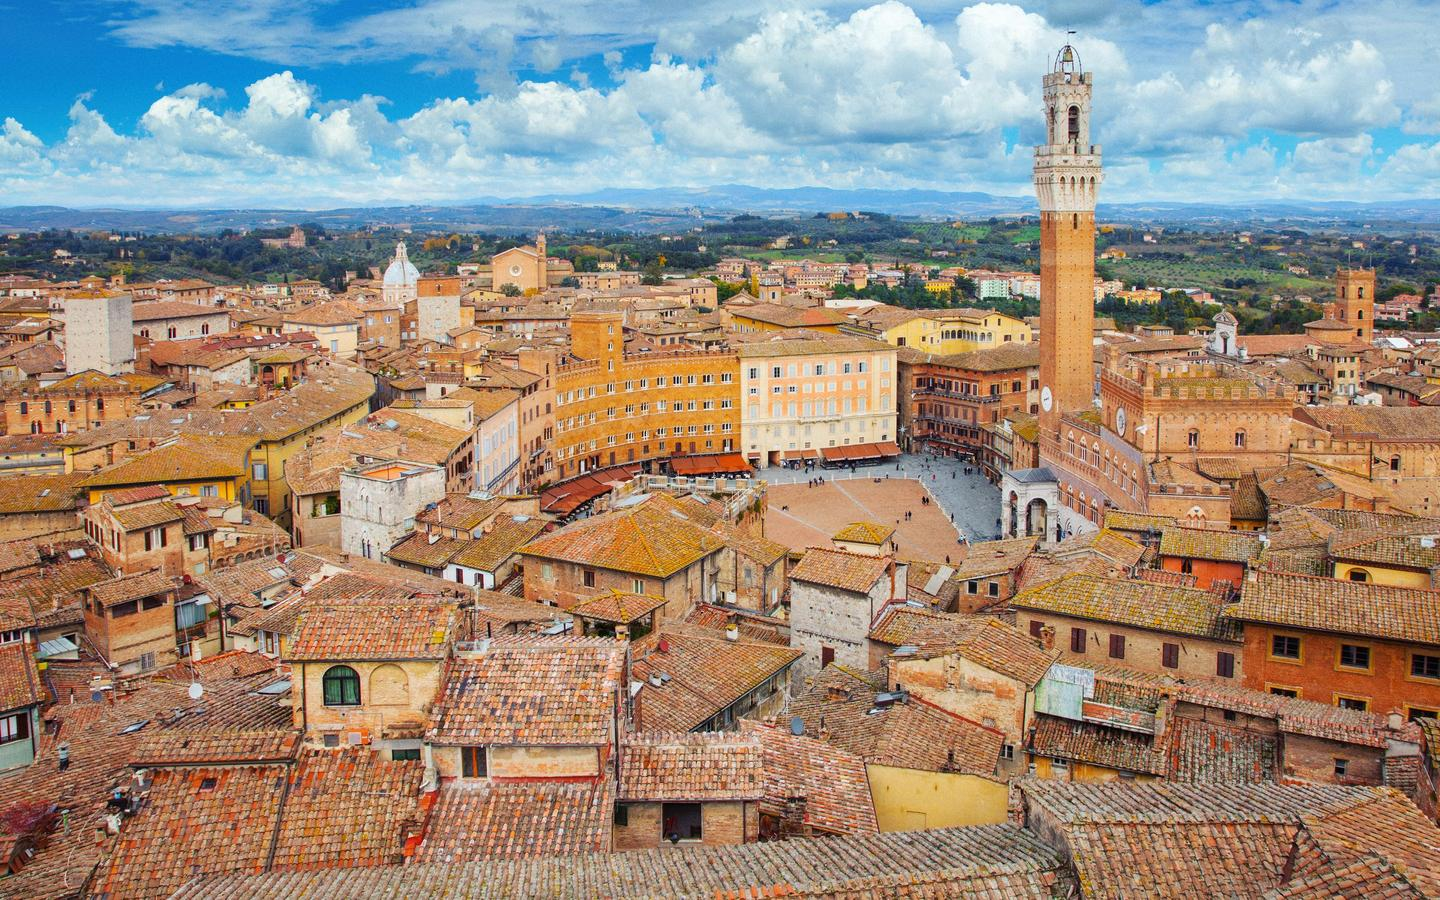 Hotels in Siena